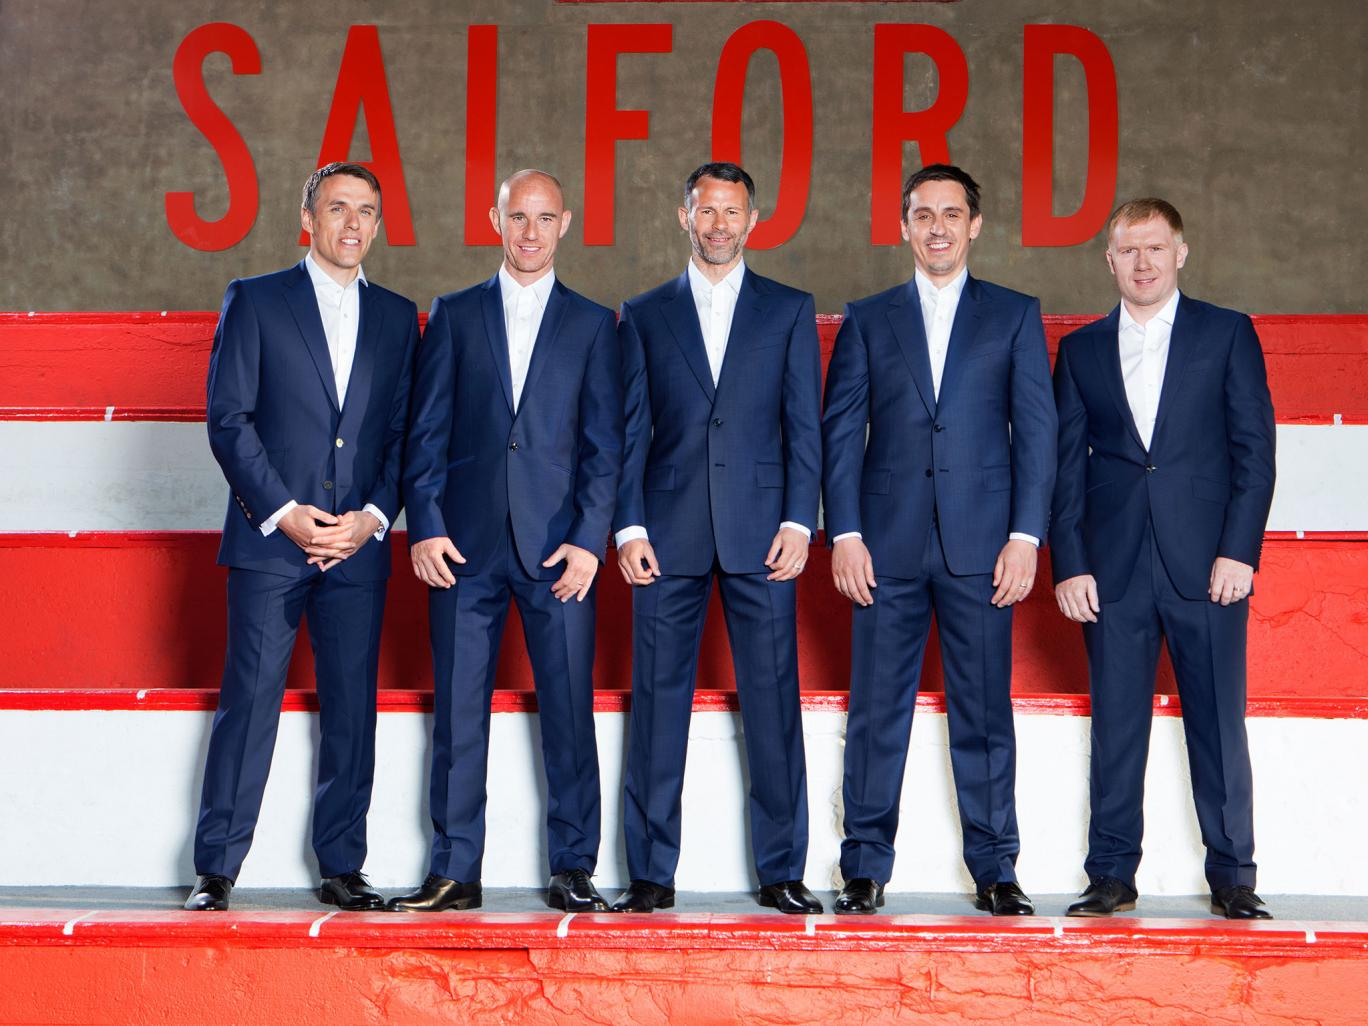 Salford Class of 92